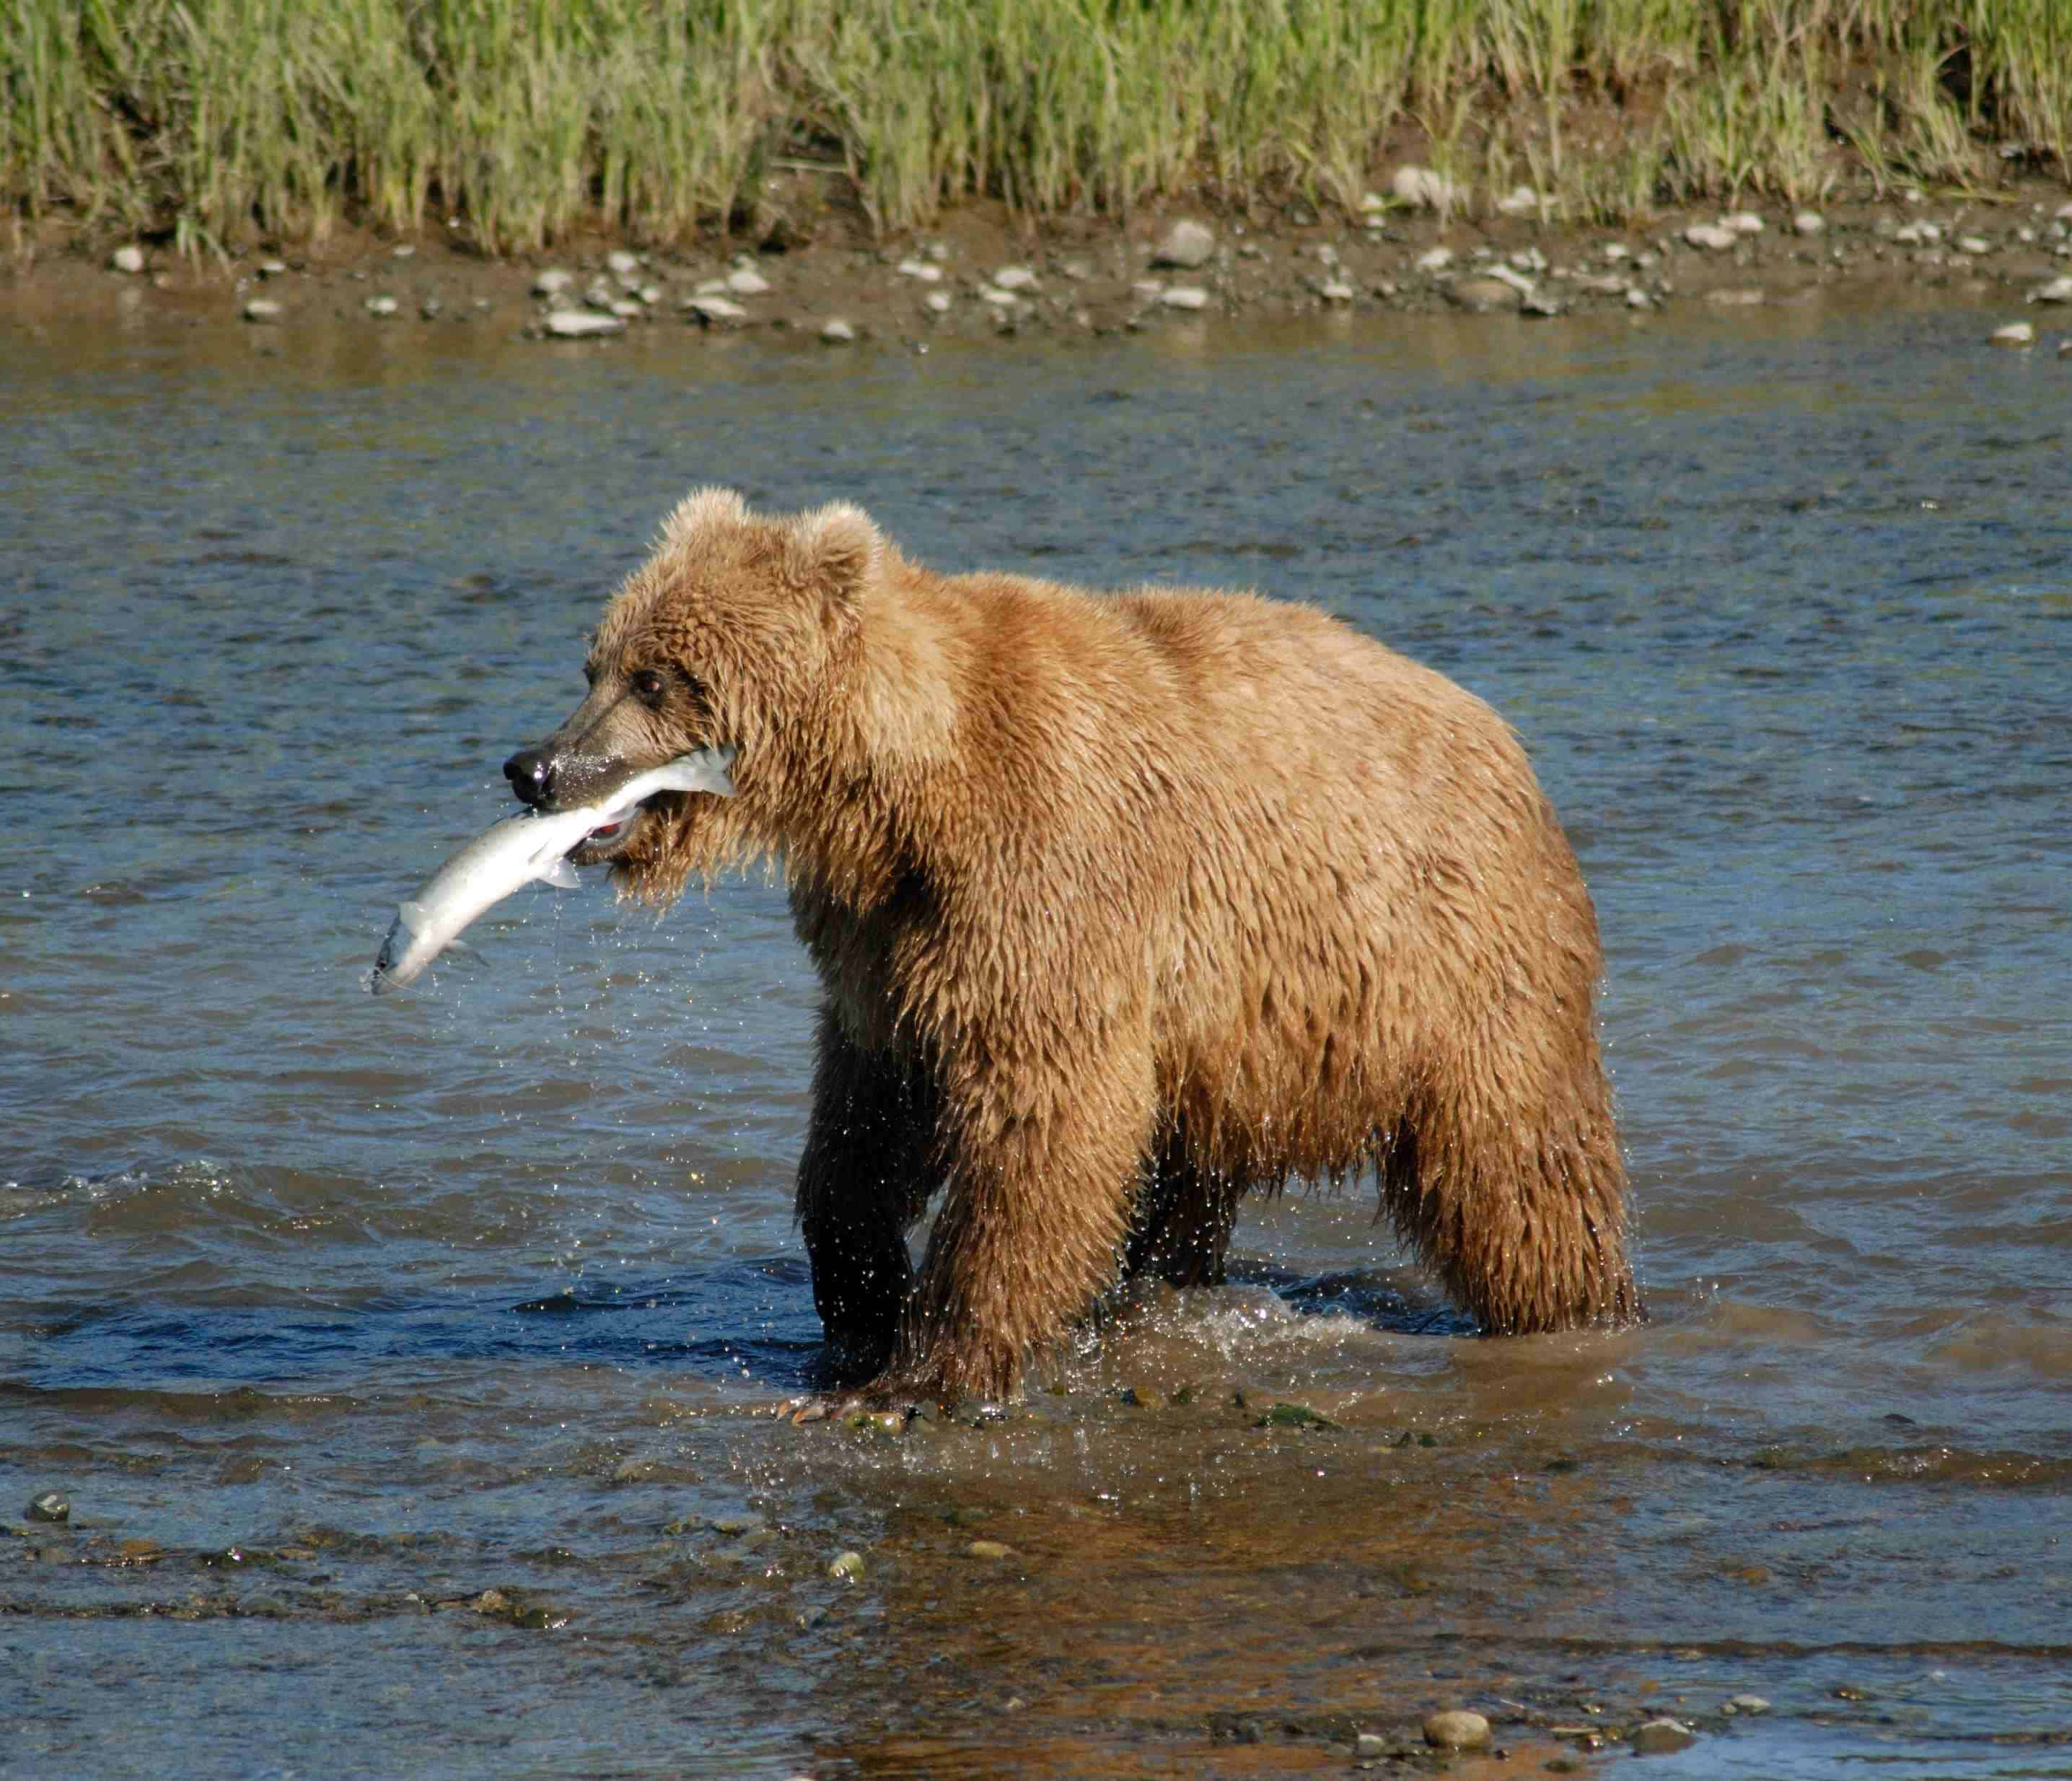 What does Grizzly bear eat?